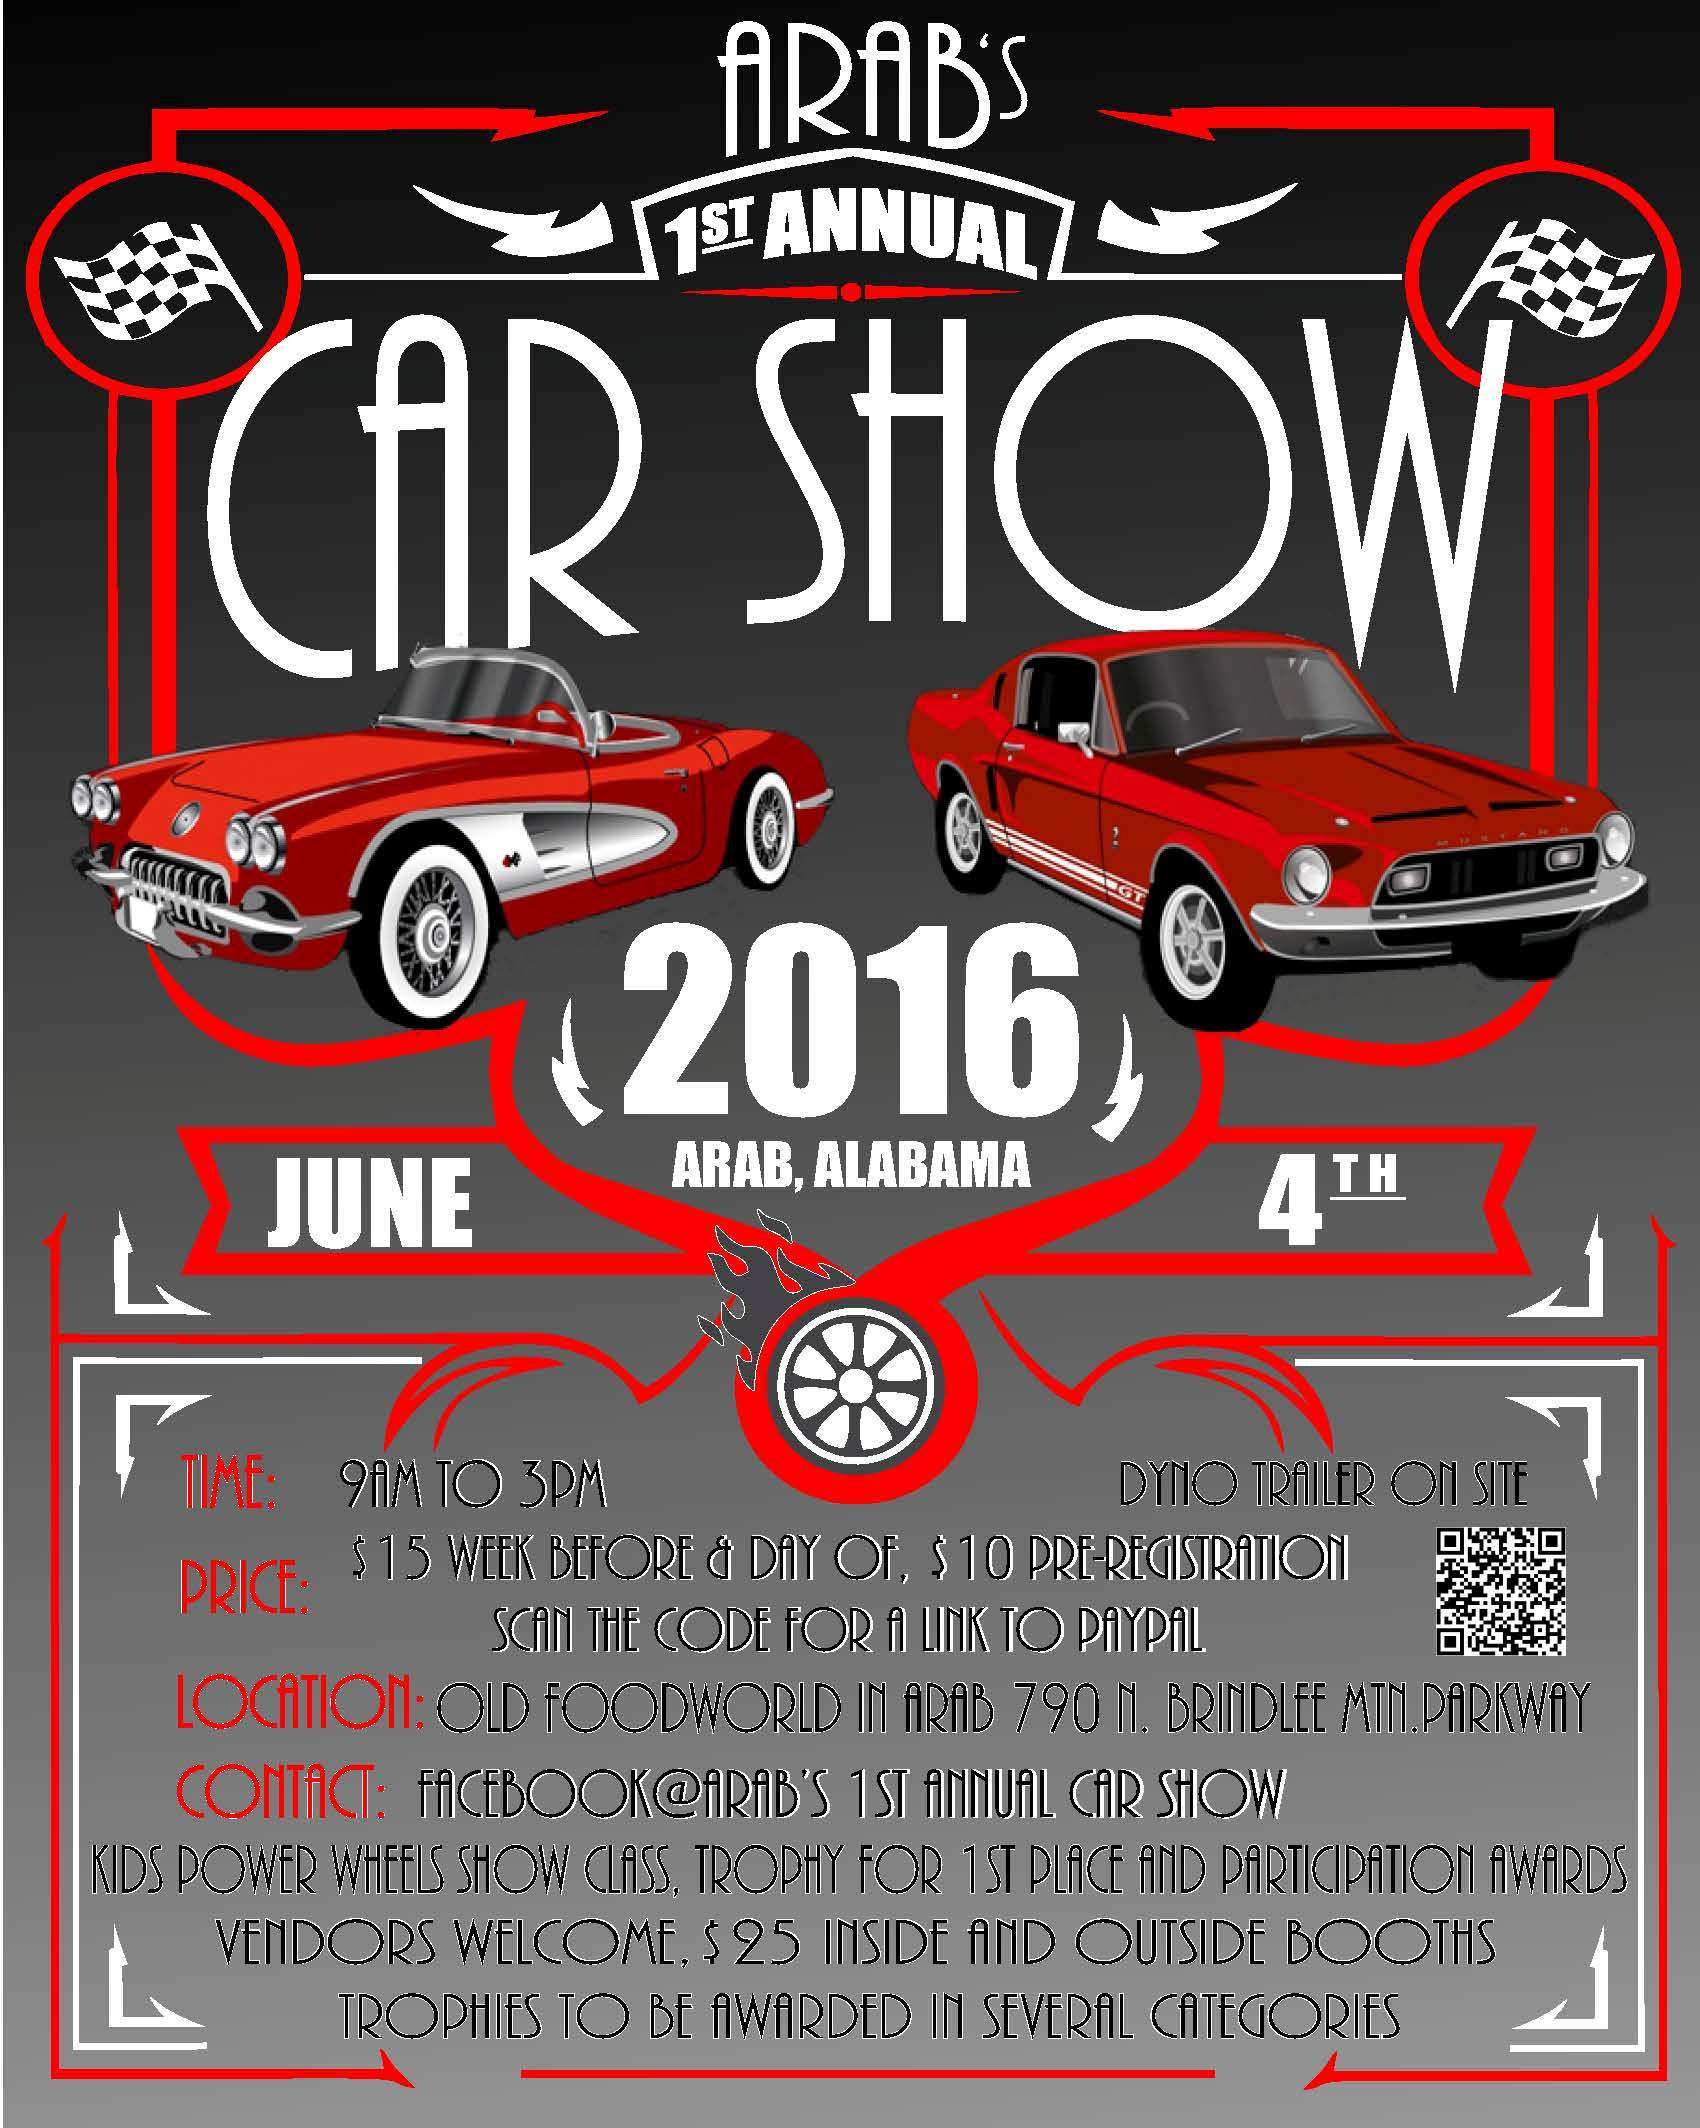 Ronald McDonald House Charities Of Alabama - Car show trophy categories